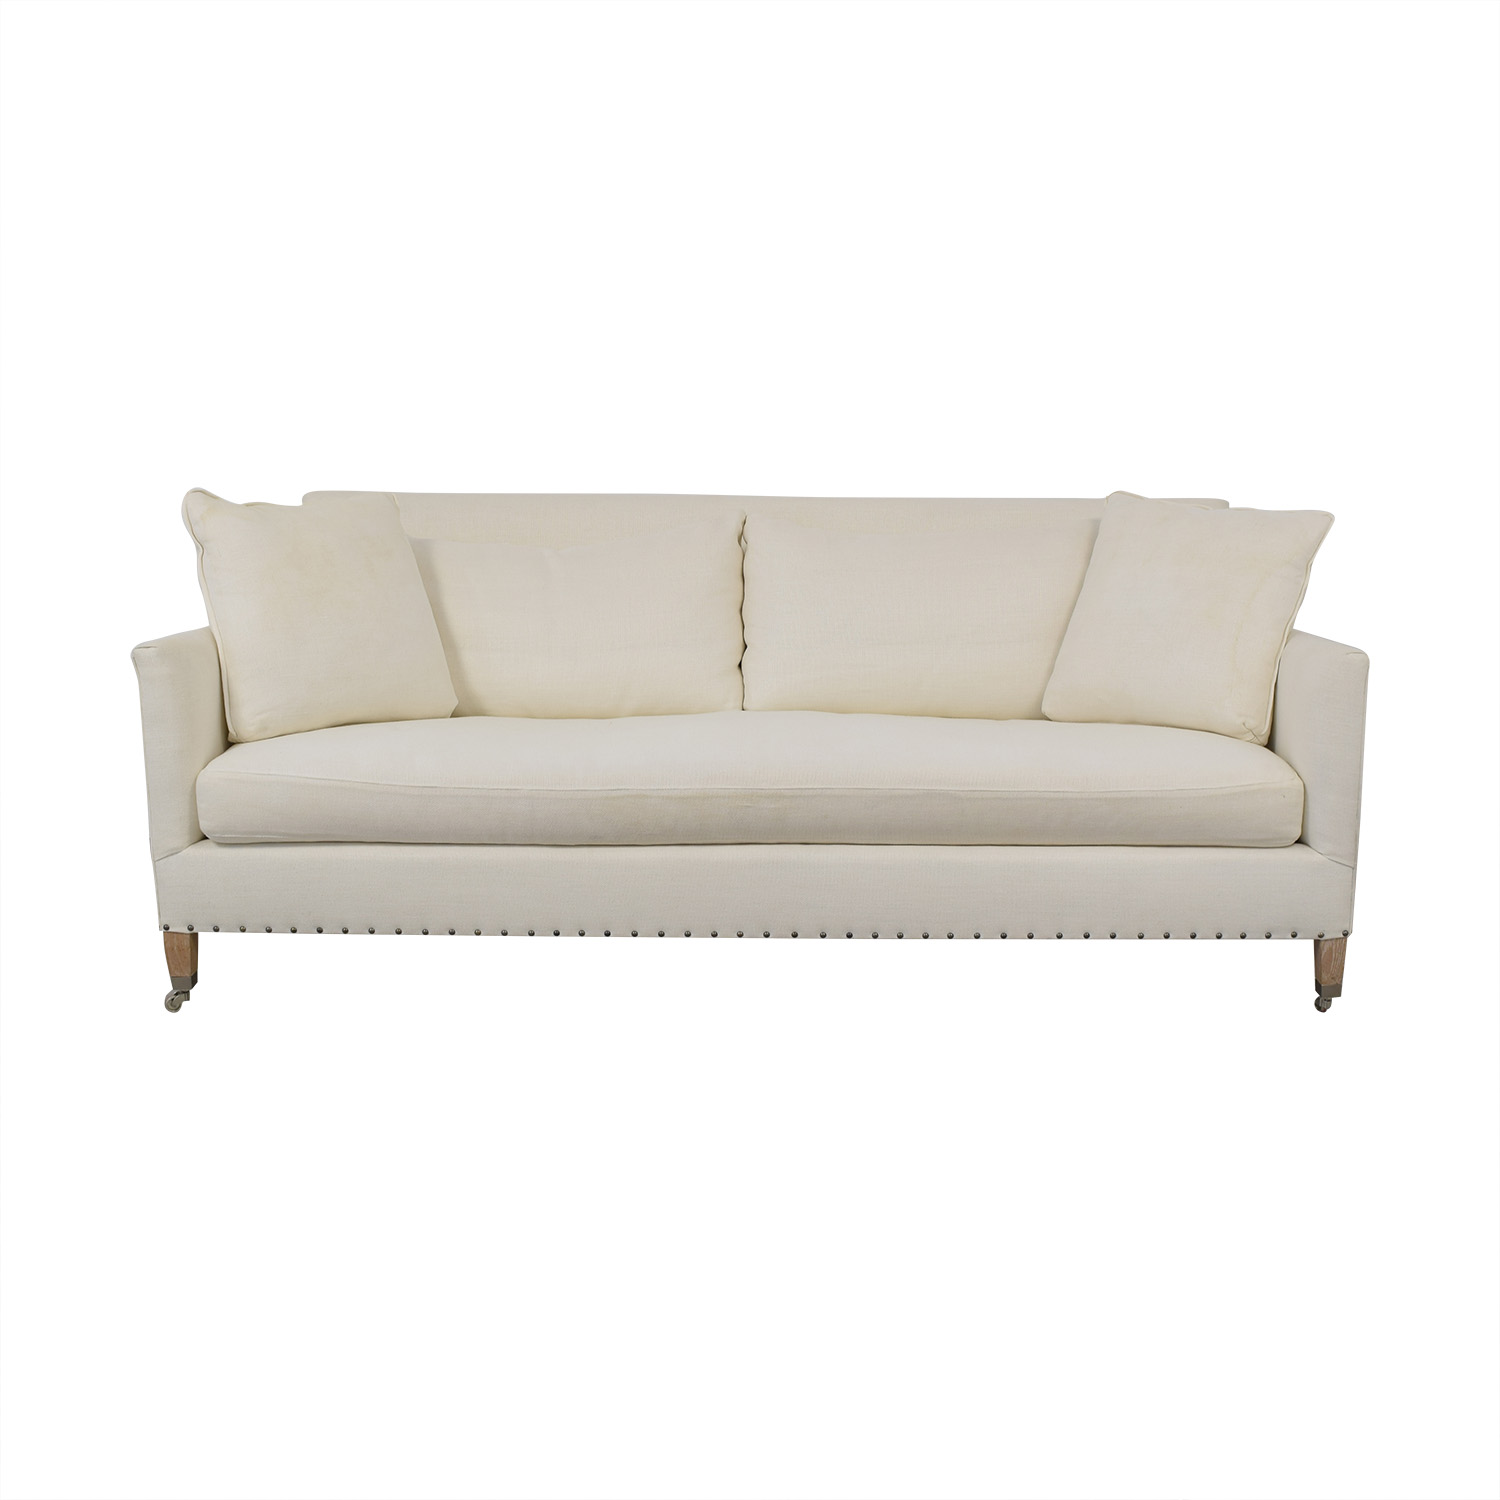 Verellen Single Cushion Sofa Verellen